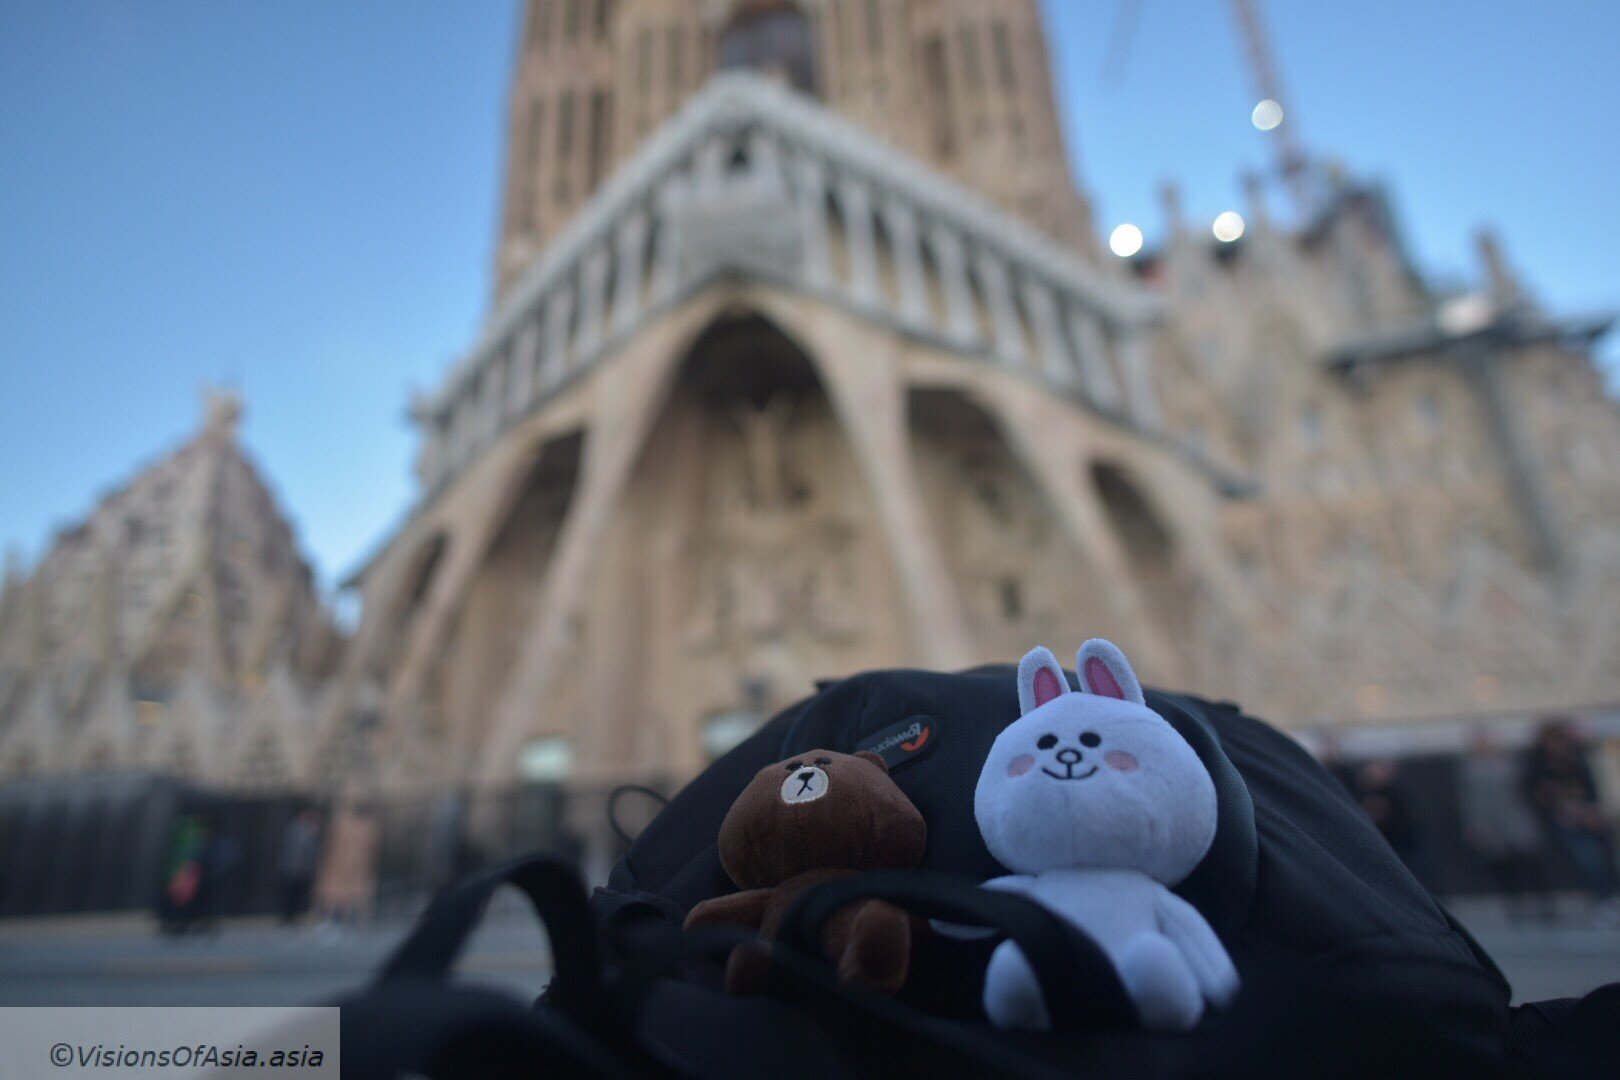 Cony and Brown before the Sagrada Familia